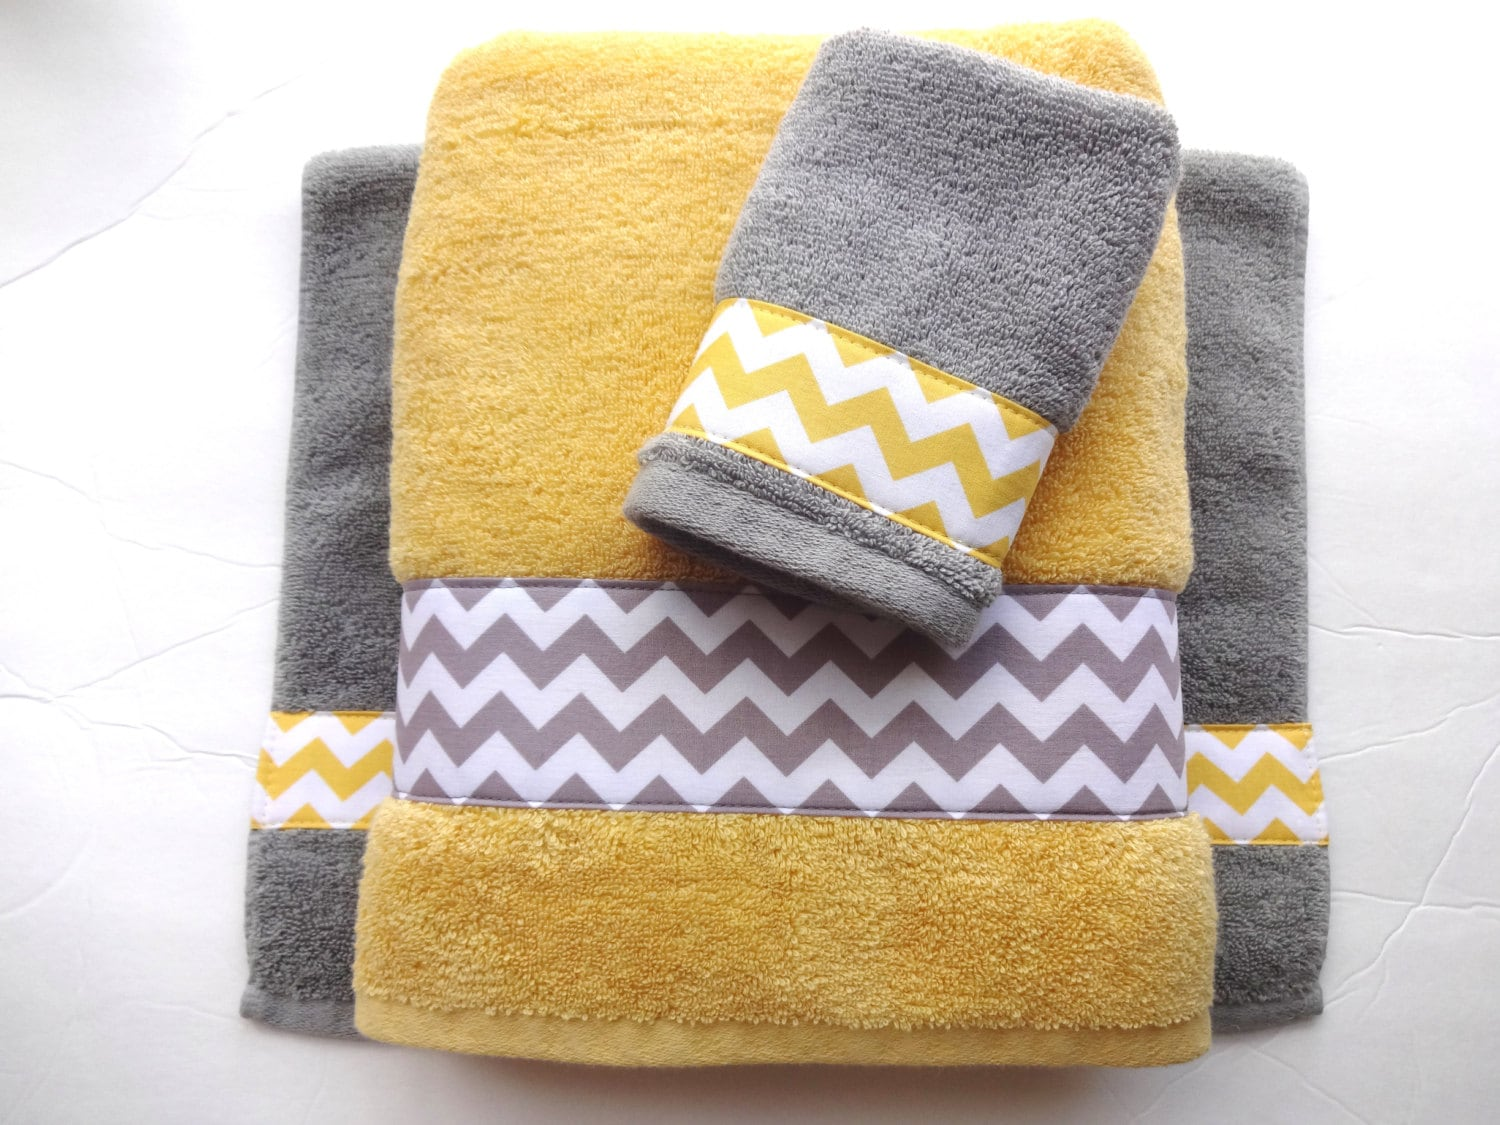 Pick Your Size Towel yellow and grey towels gray and yellow.